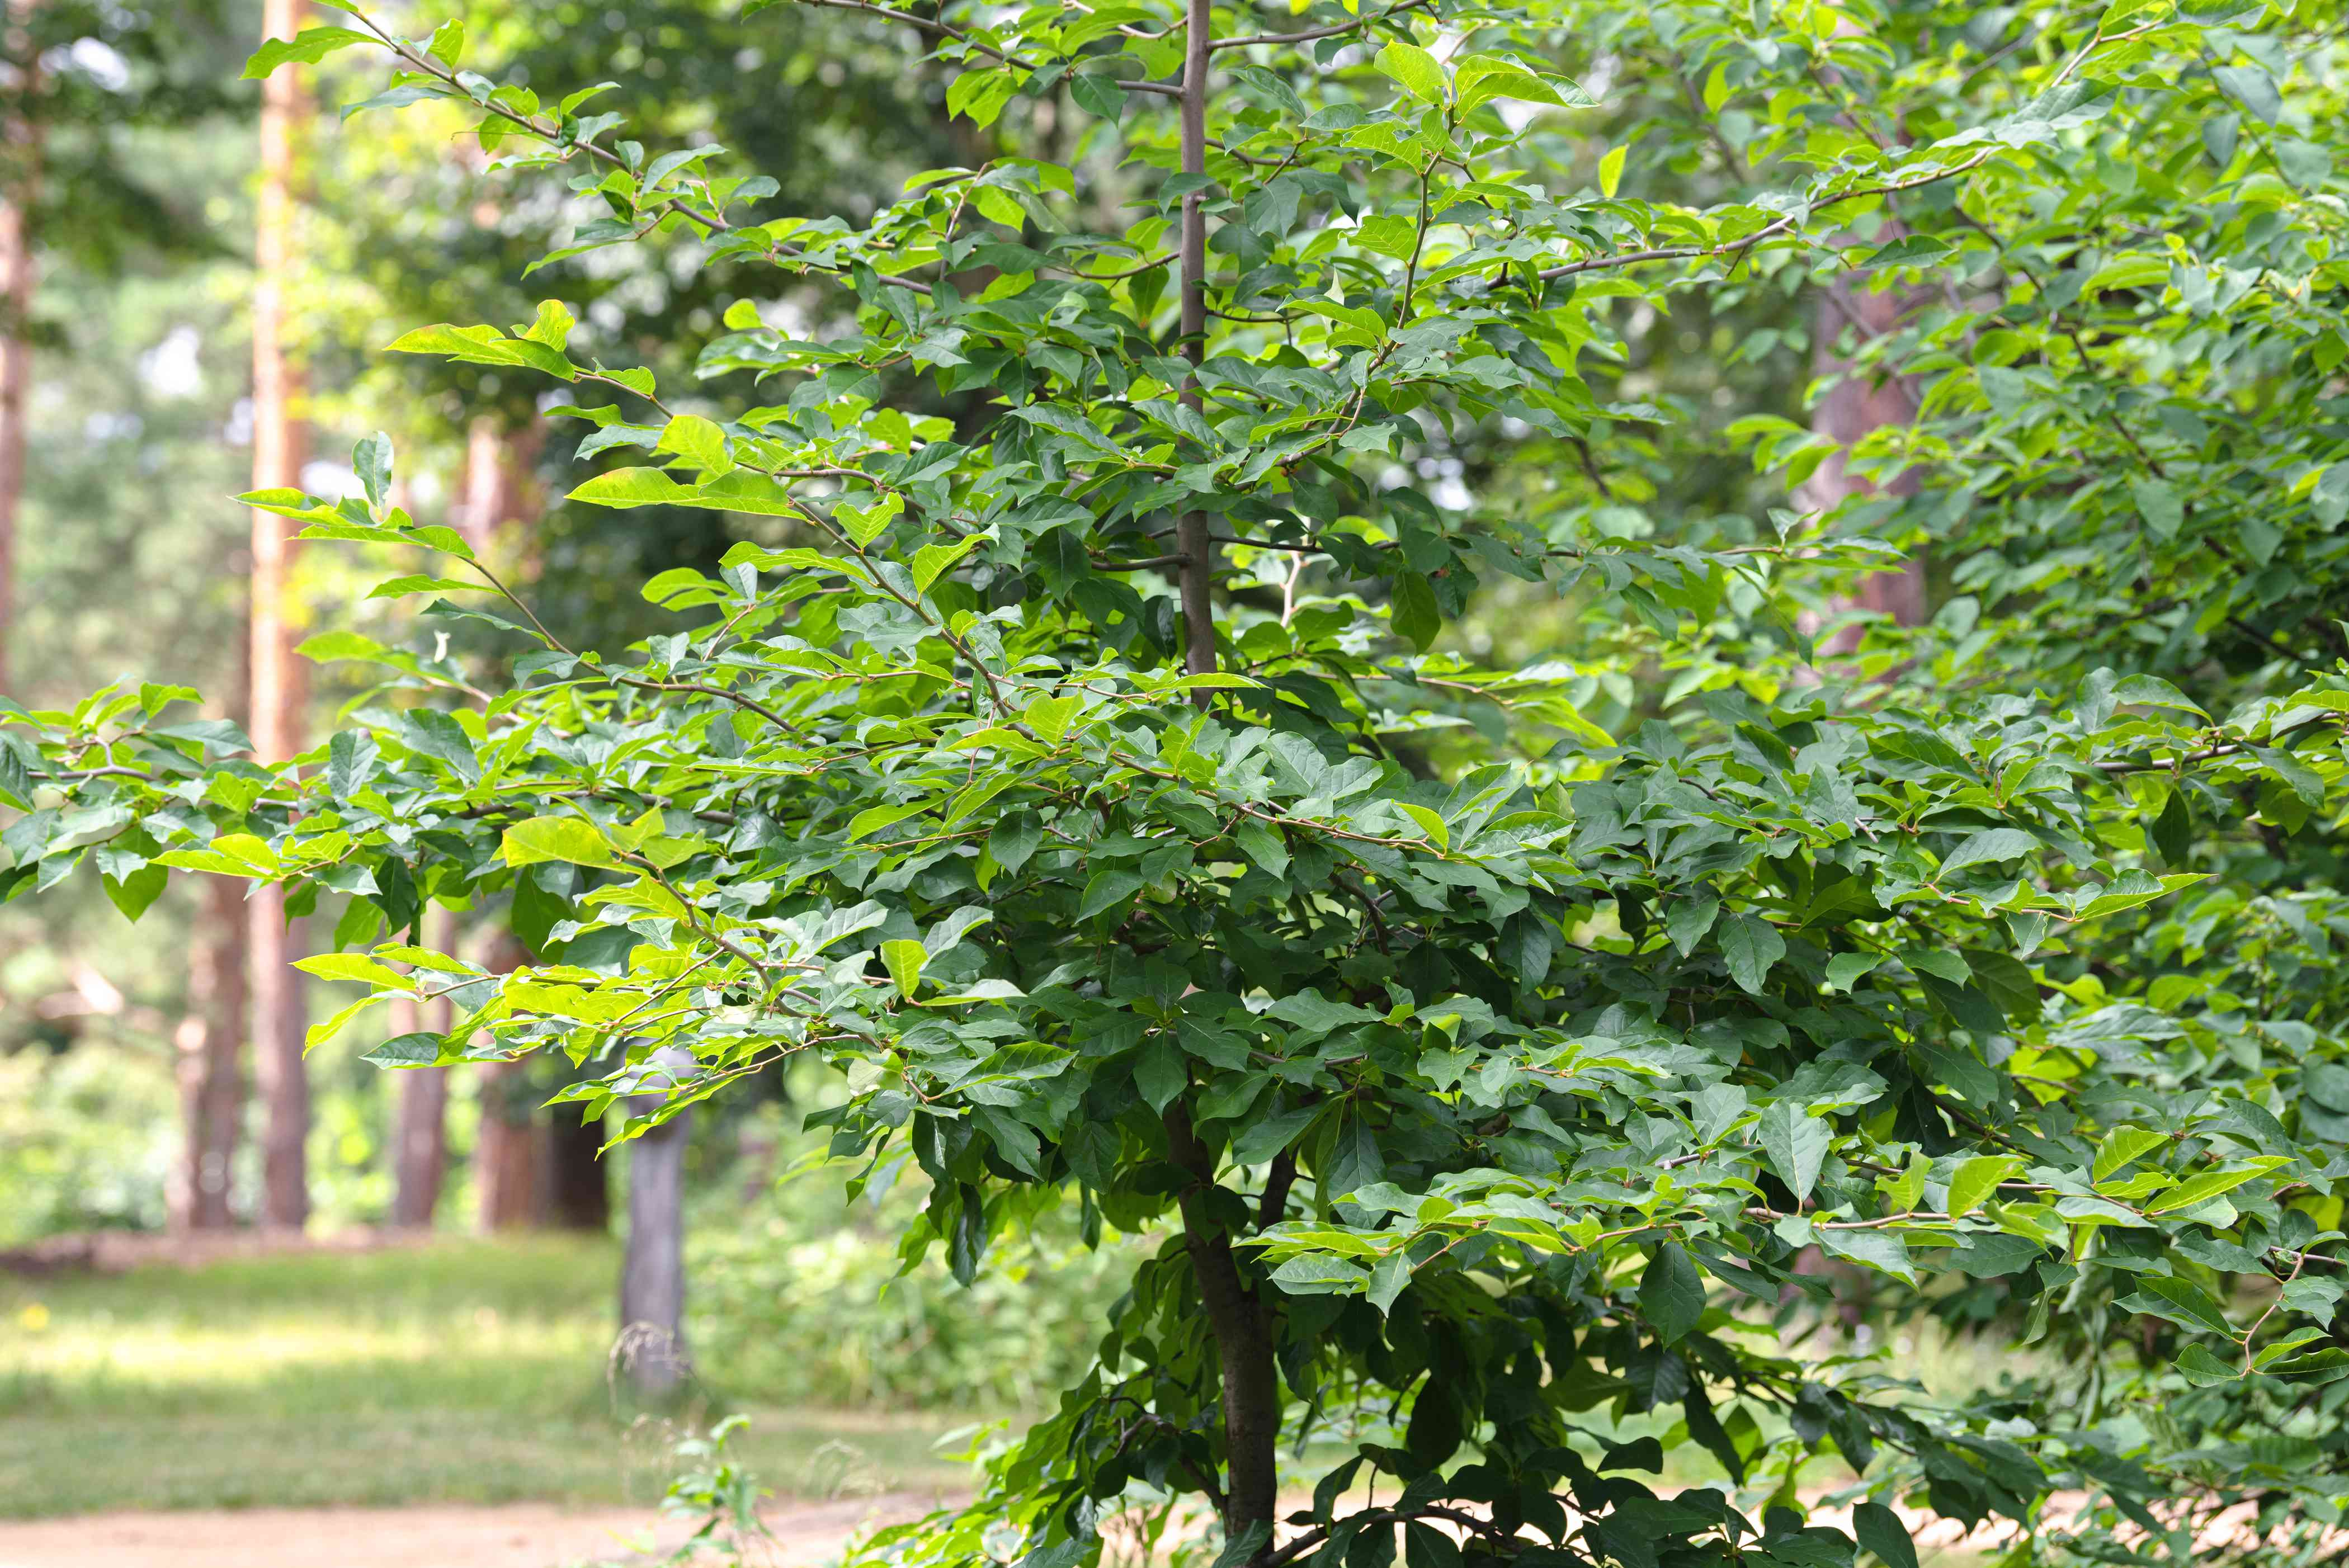 Black gum tree with long branches and glossy green leaves in wooded area